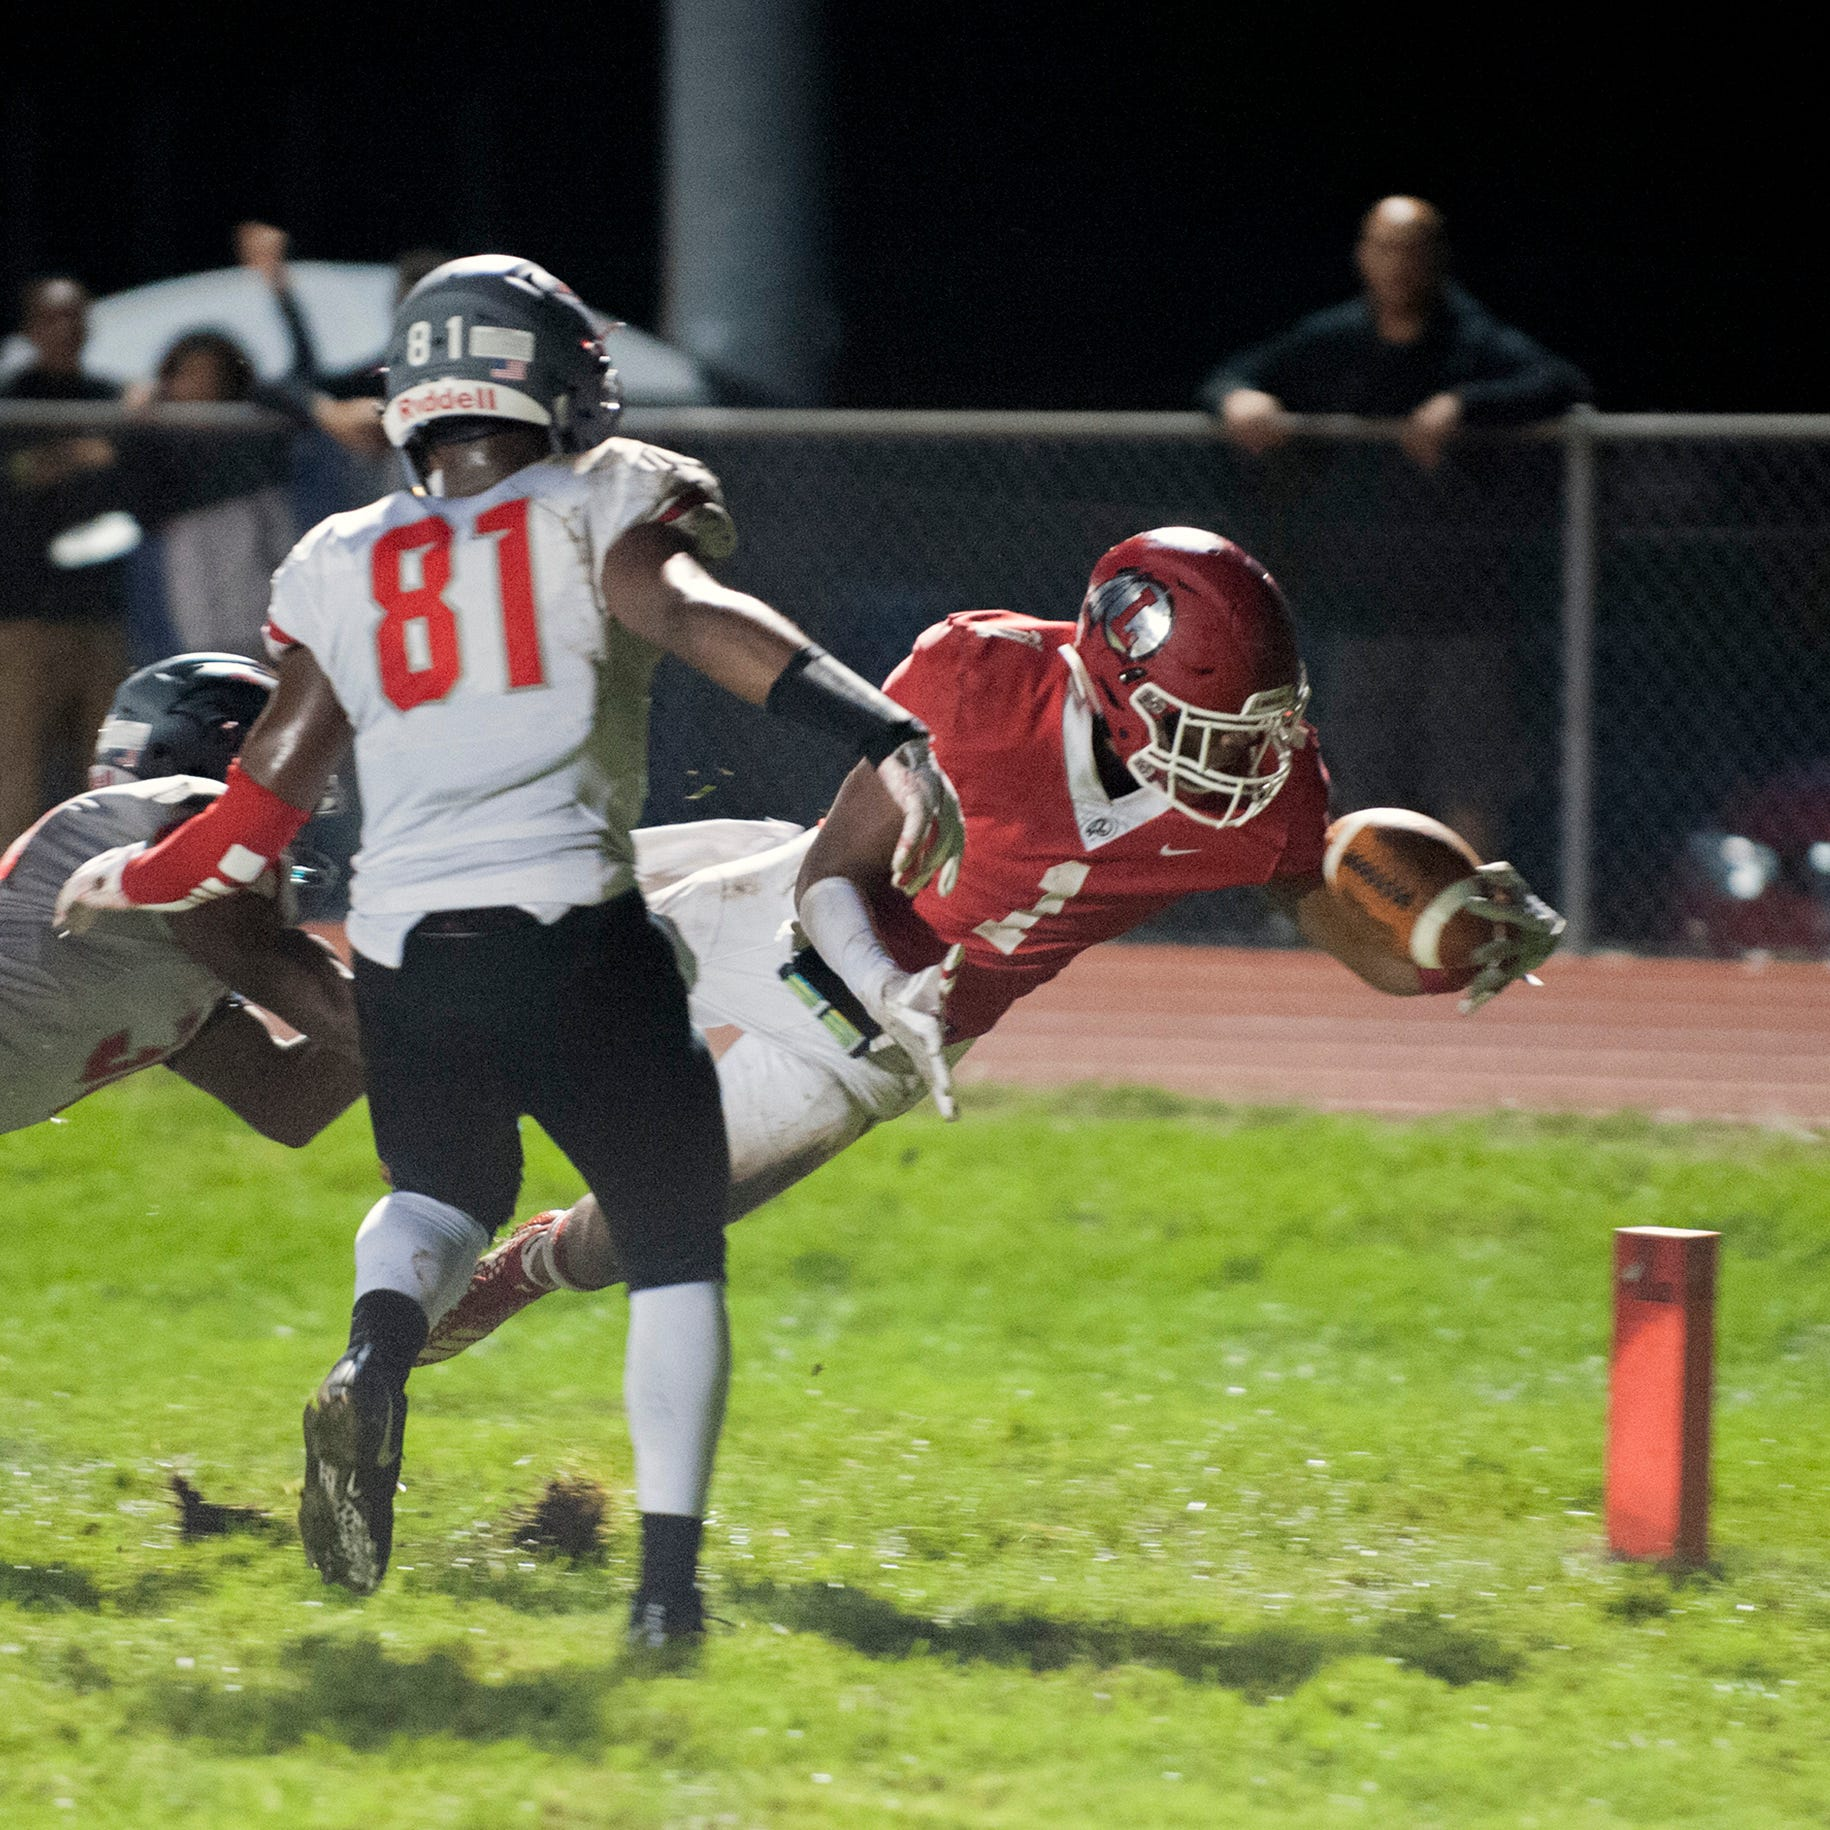 H.S. football: Vineland displayed different look in return trip to Lenape